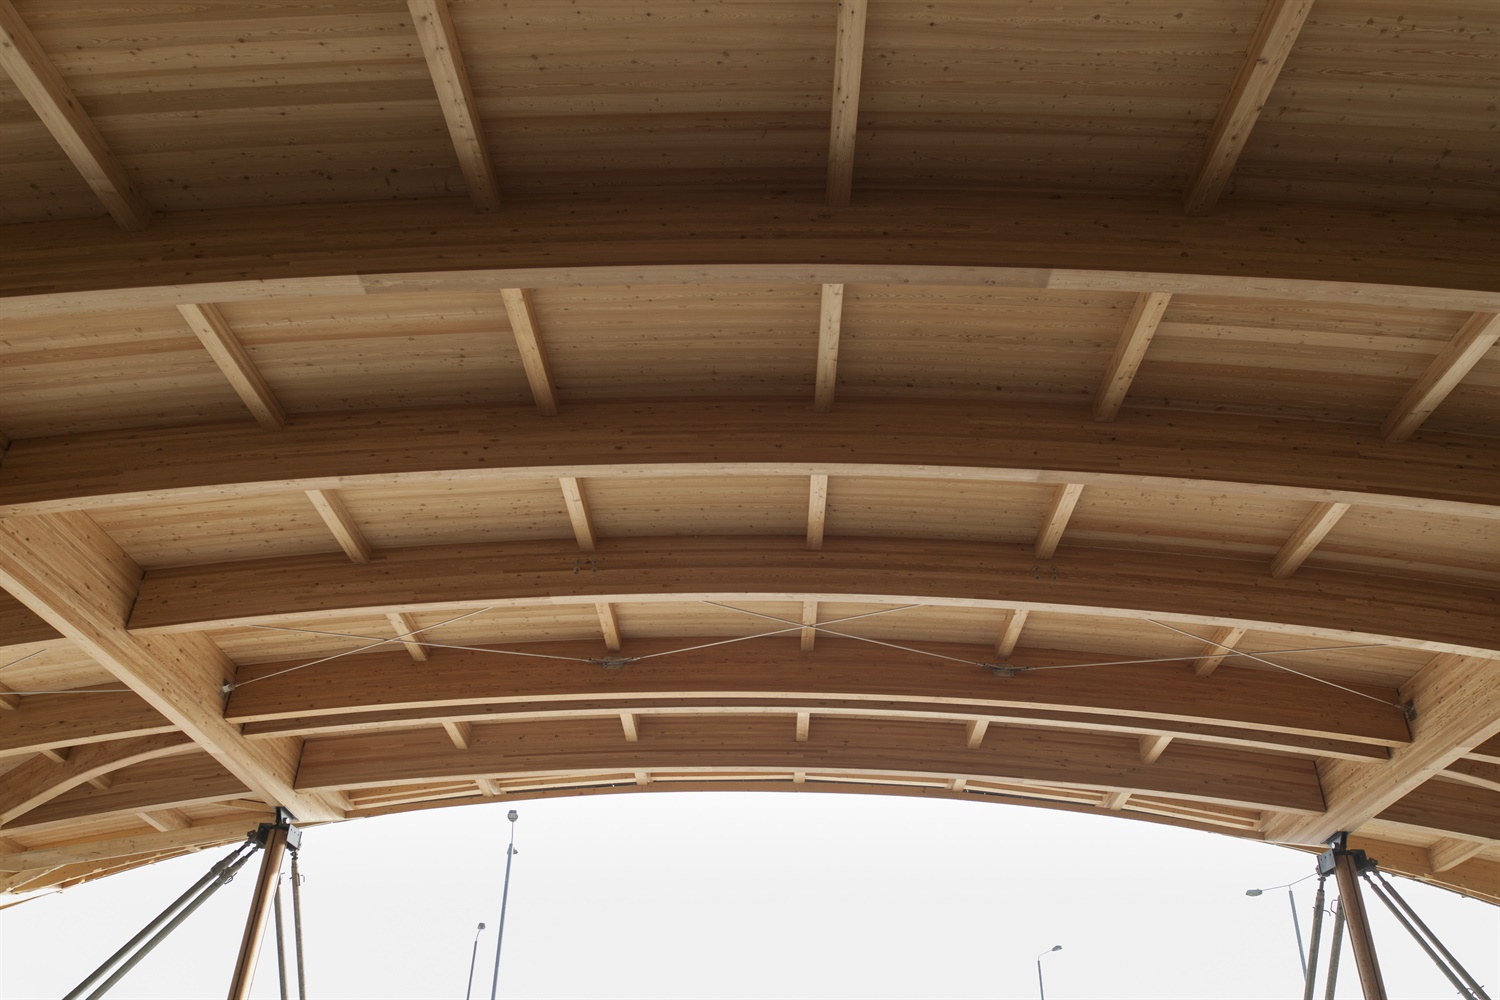 Timber structure of the roof for Elizabeth line Abbey Wood station 250712